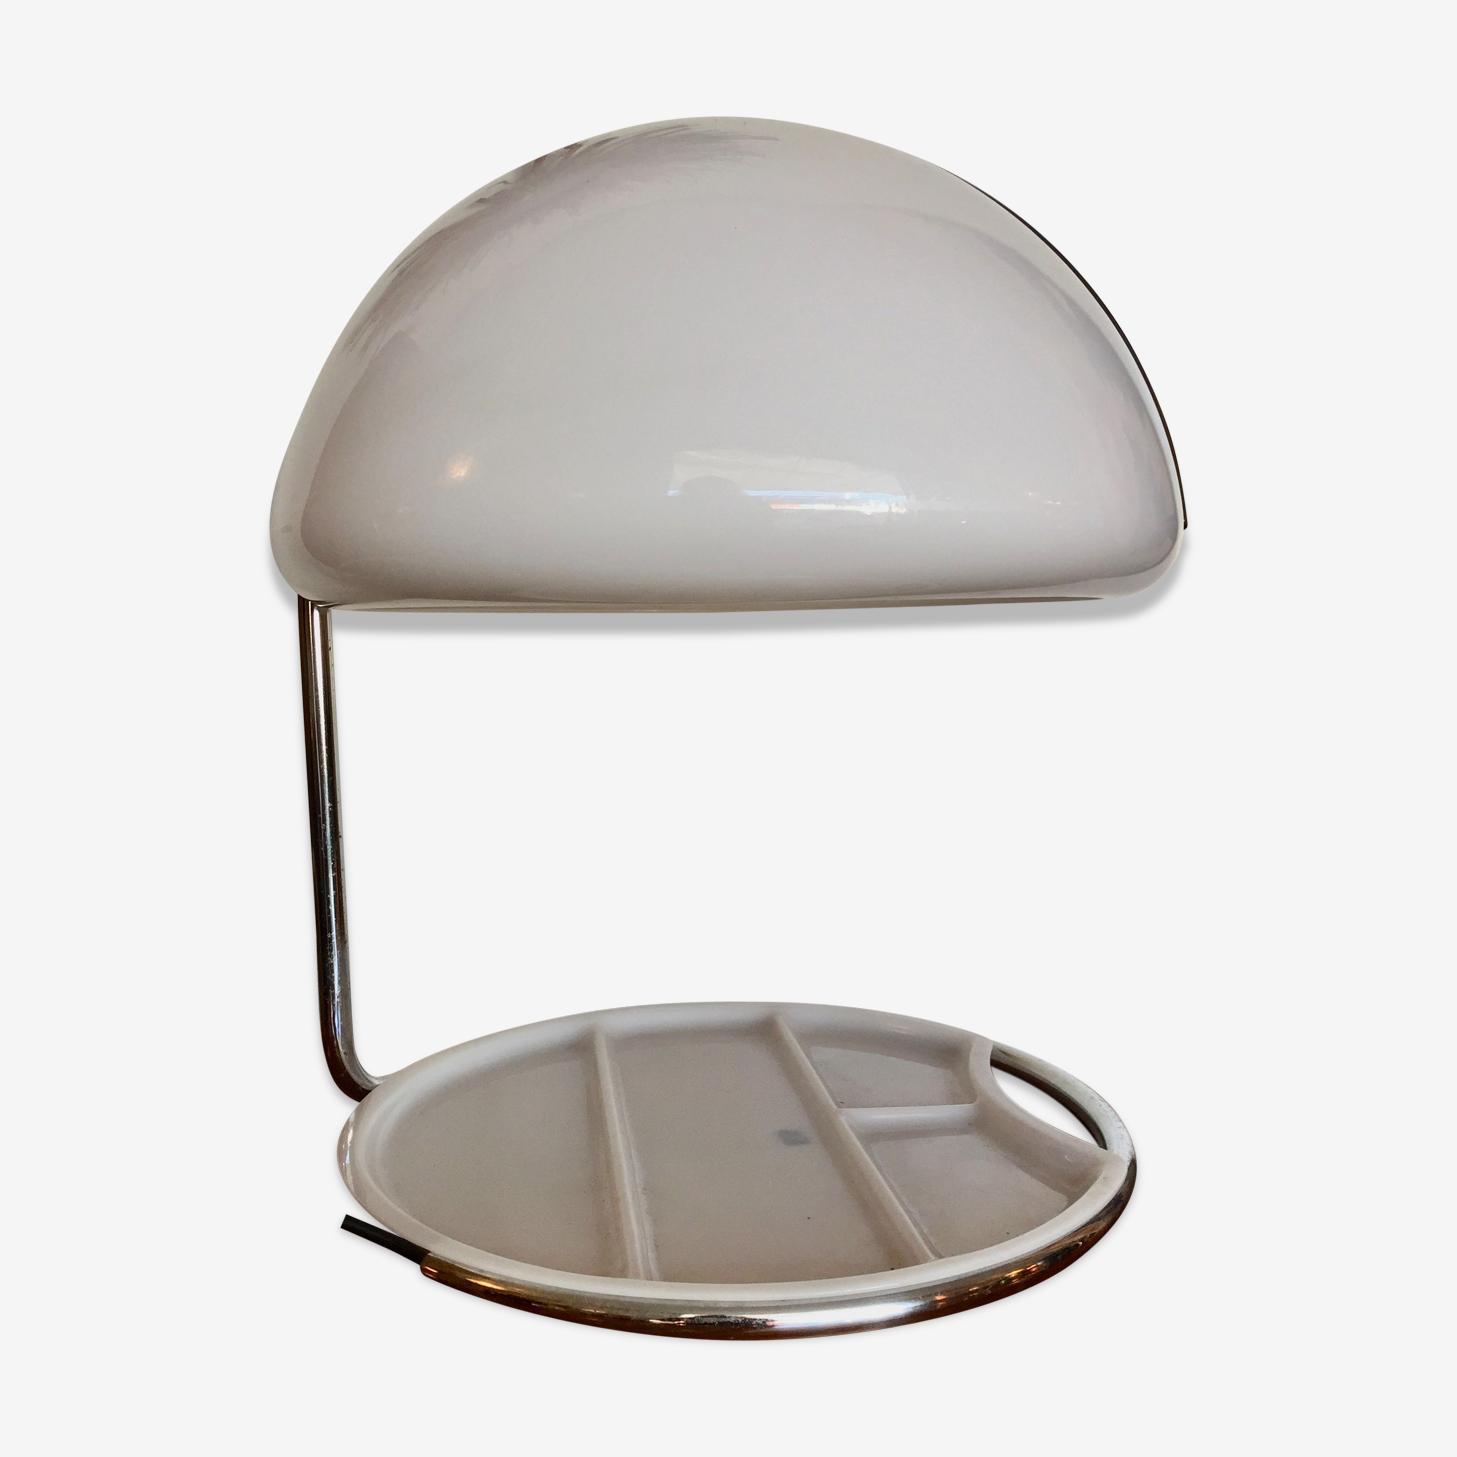 Table lamp 1968 in white ABS and metal shell